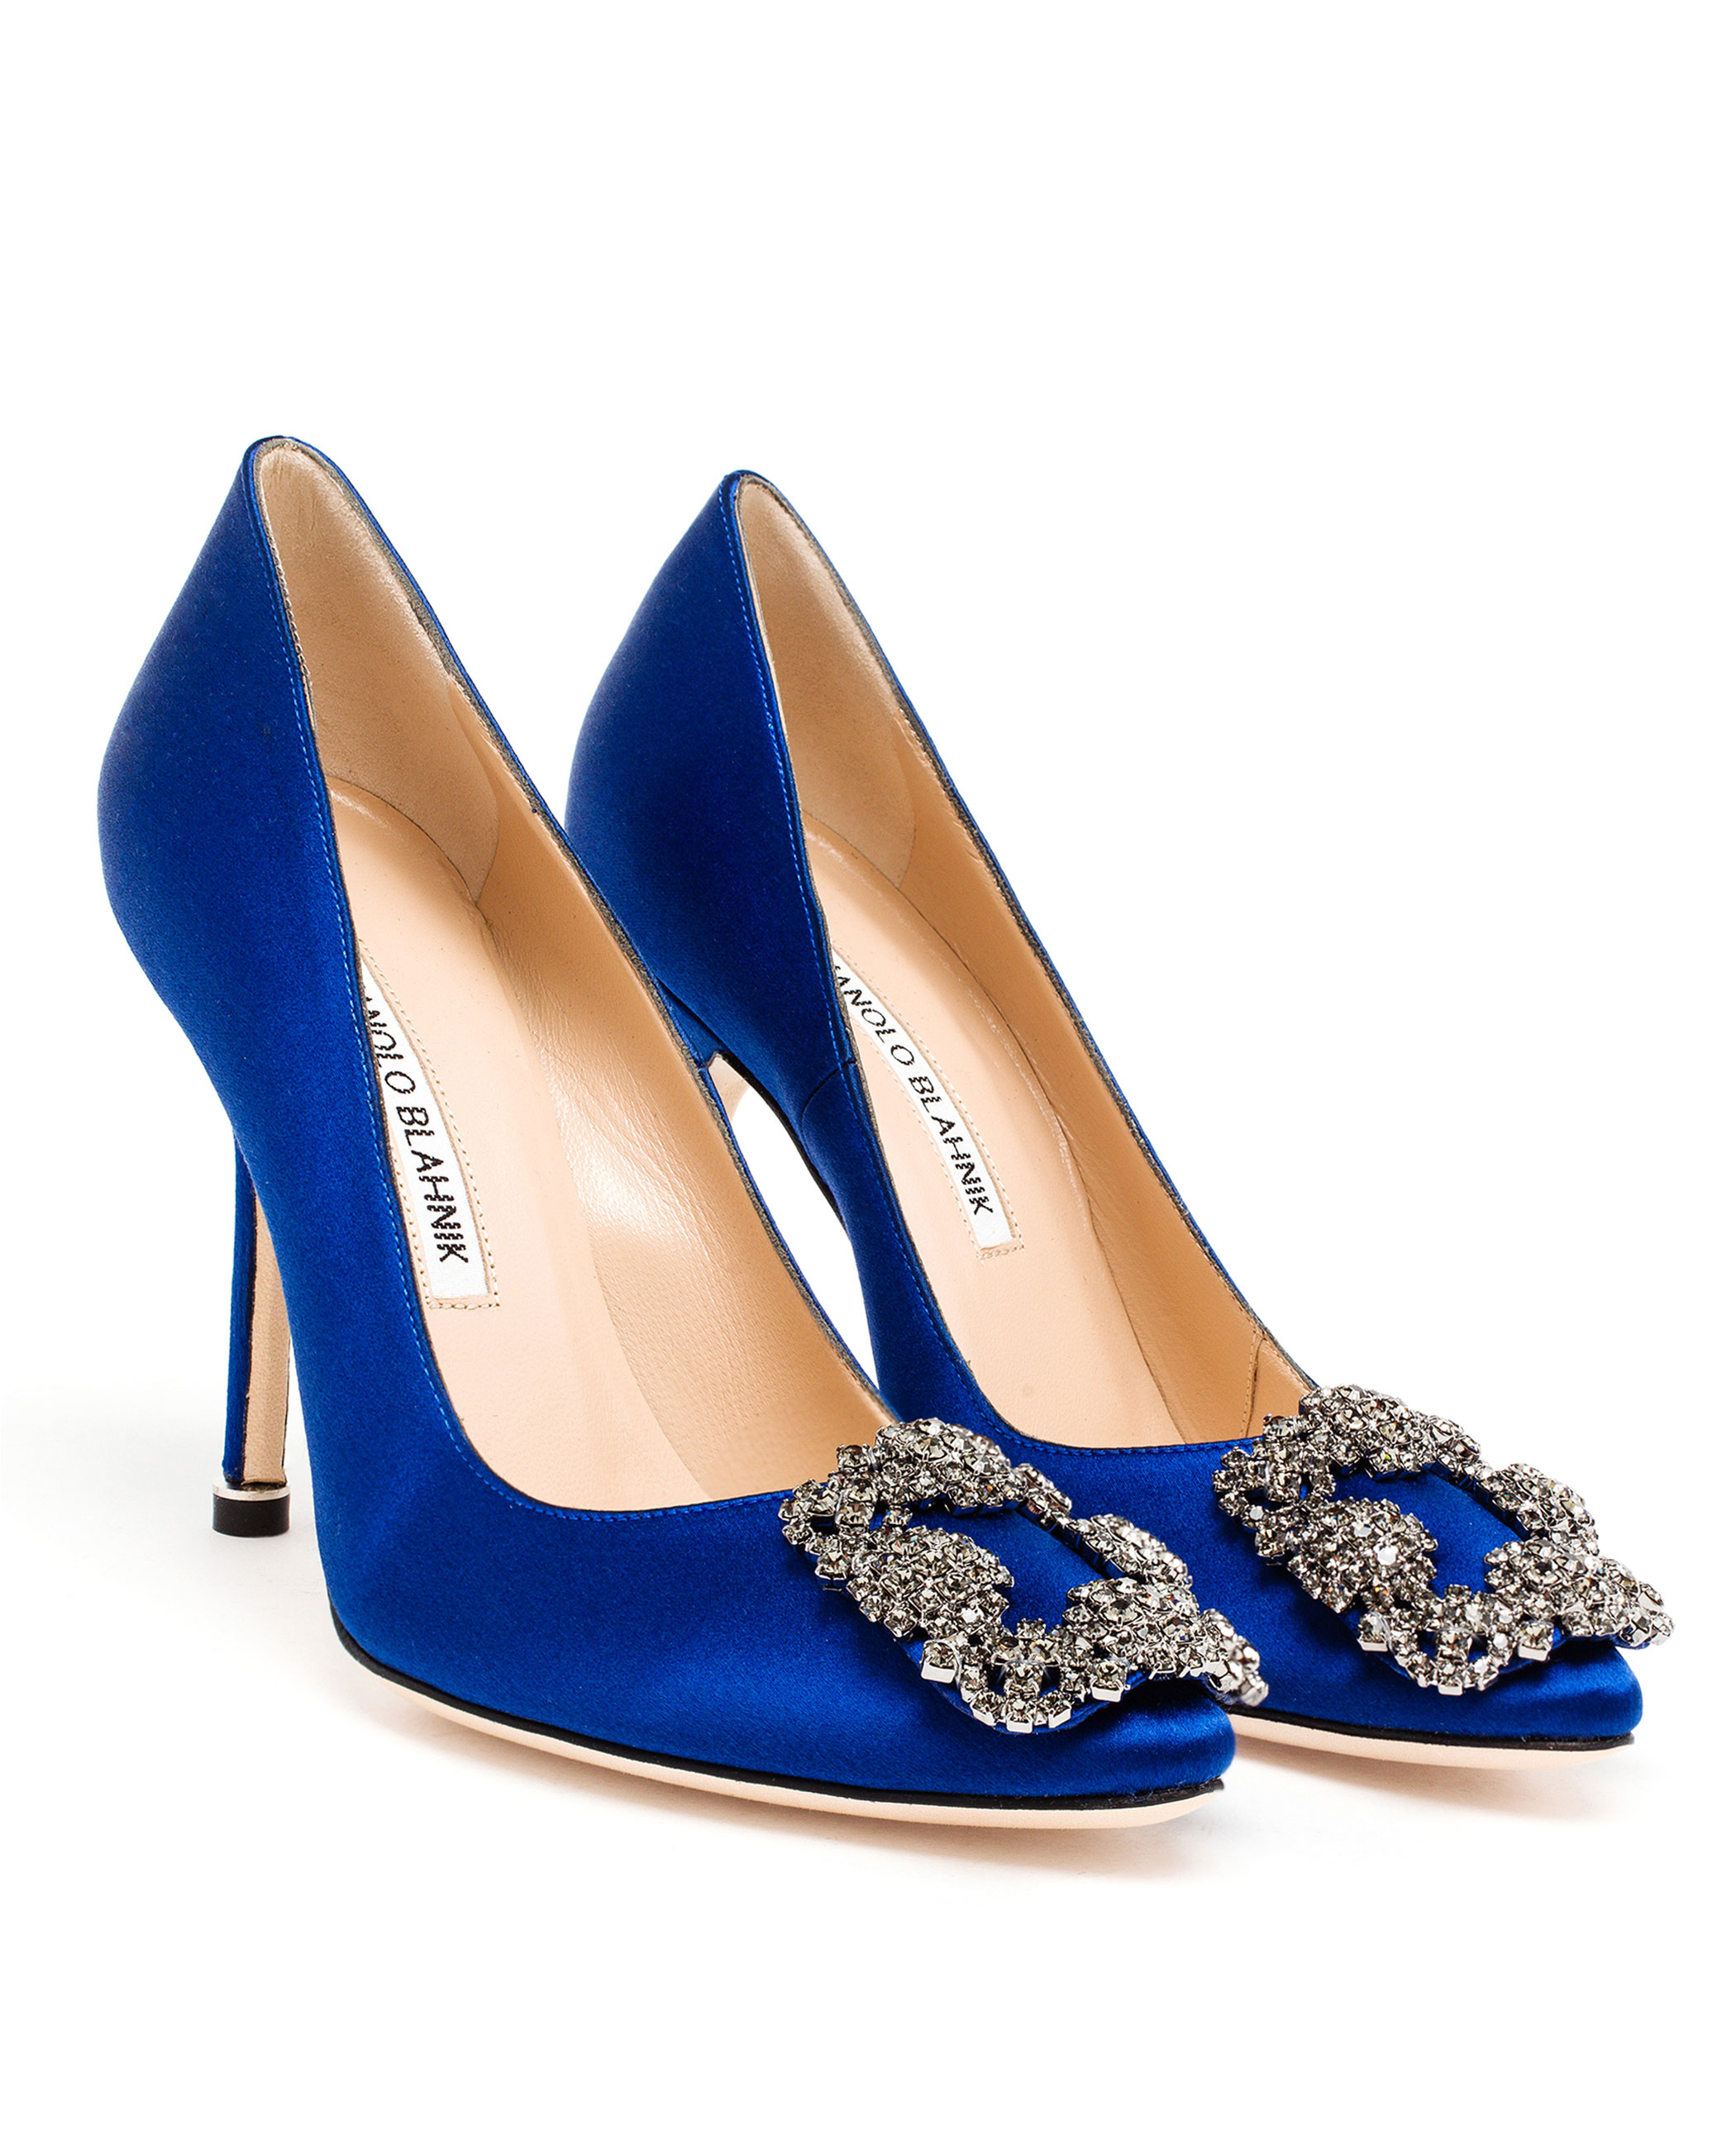 4b6eeb668c85e9 Gallery. Previously sold at  Browns · Women s Manolo Blahnik Hangisi ...